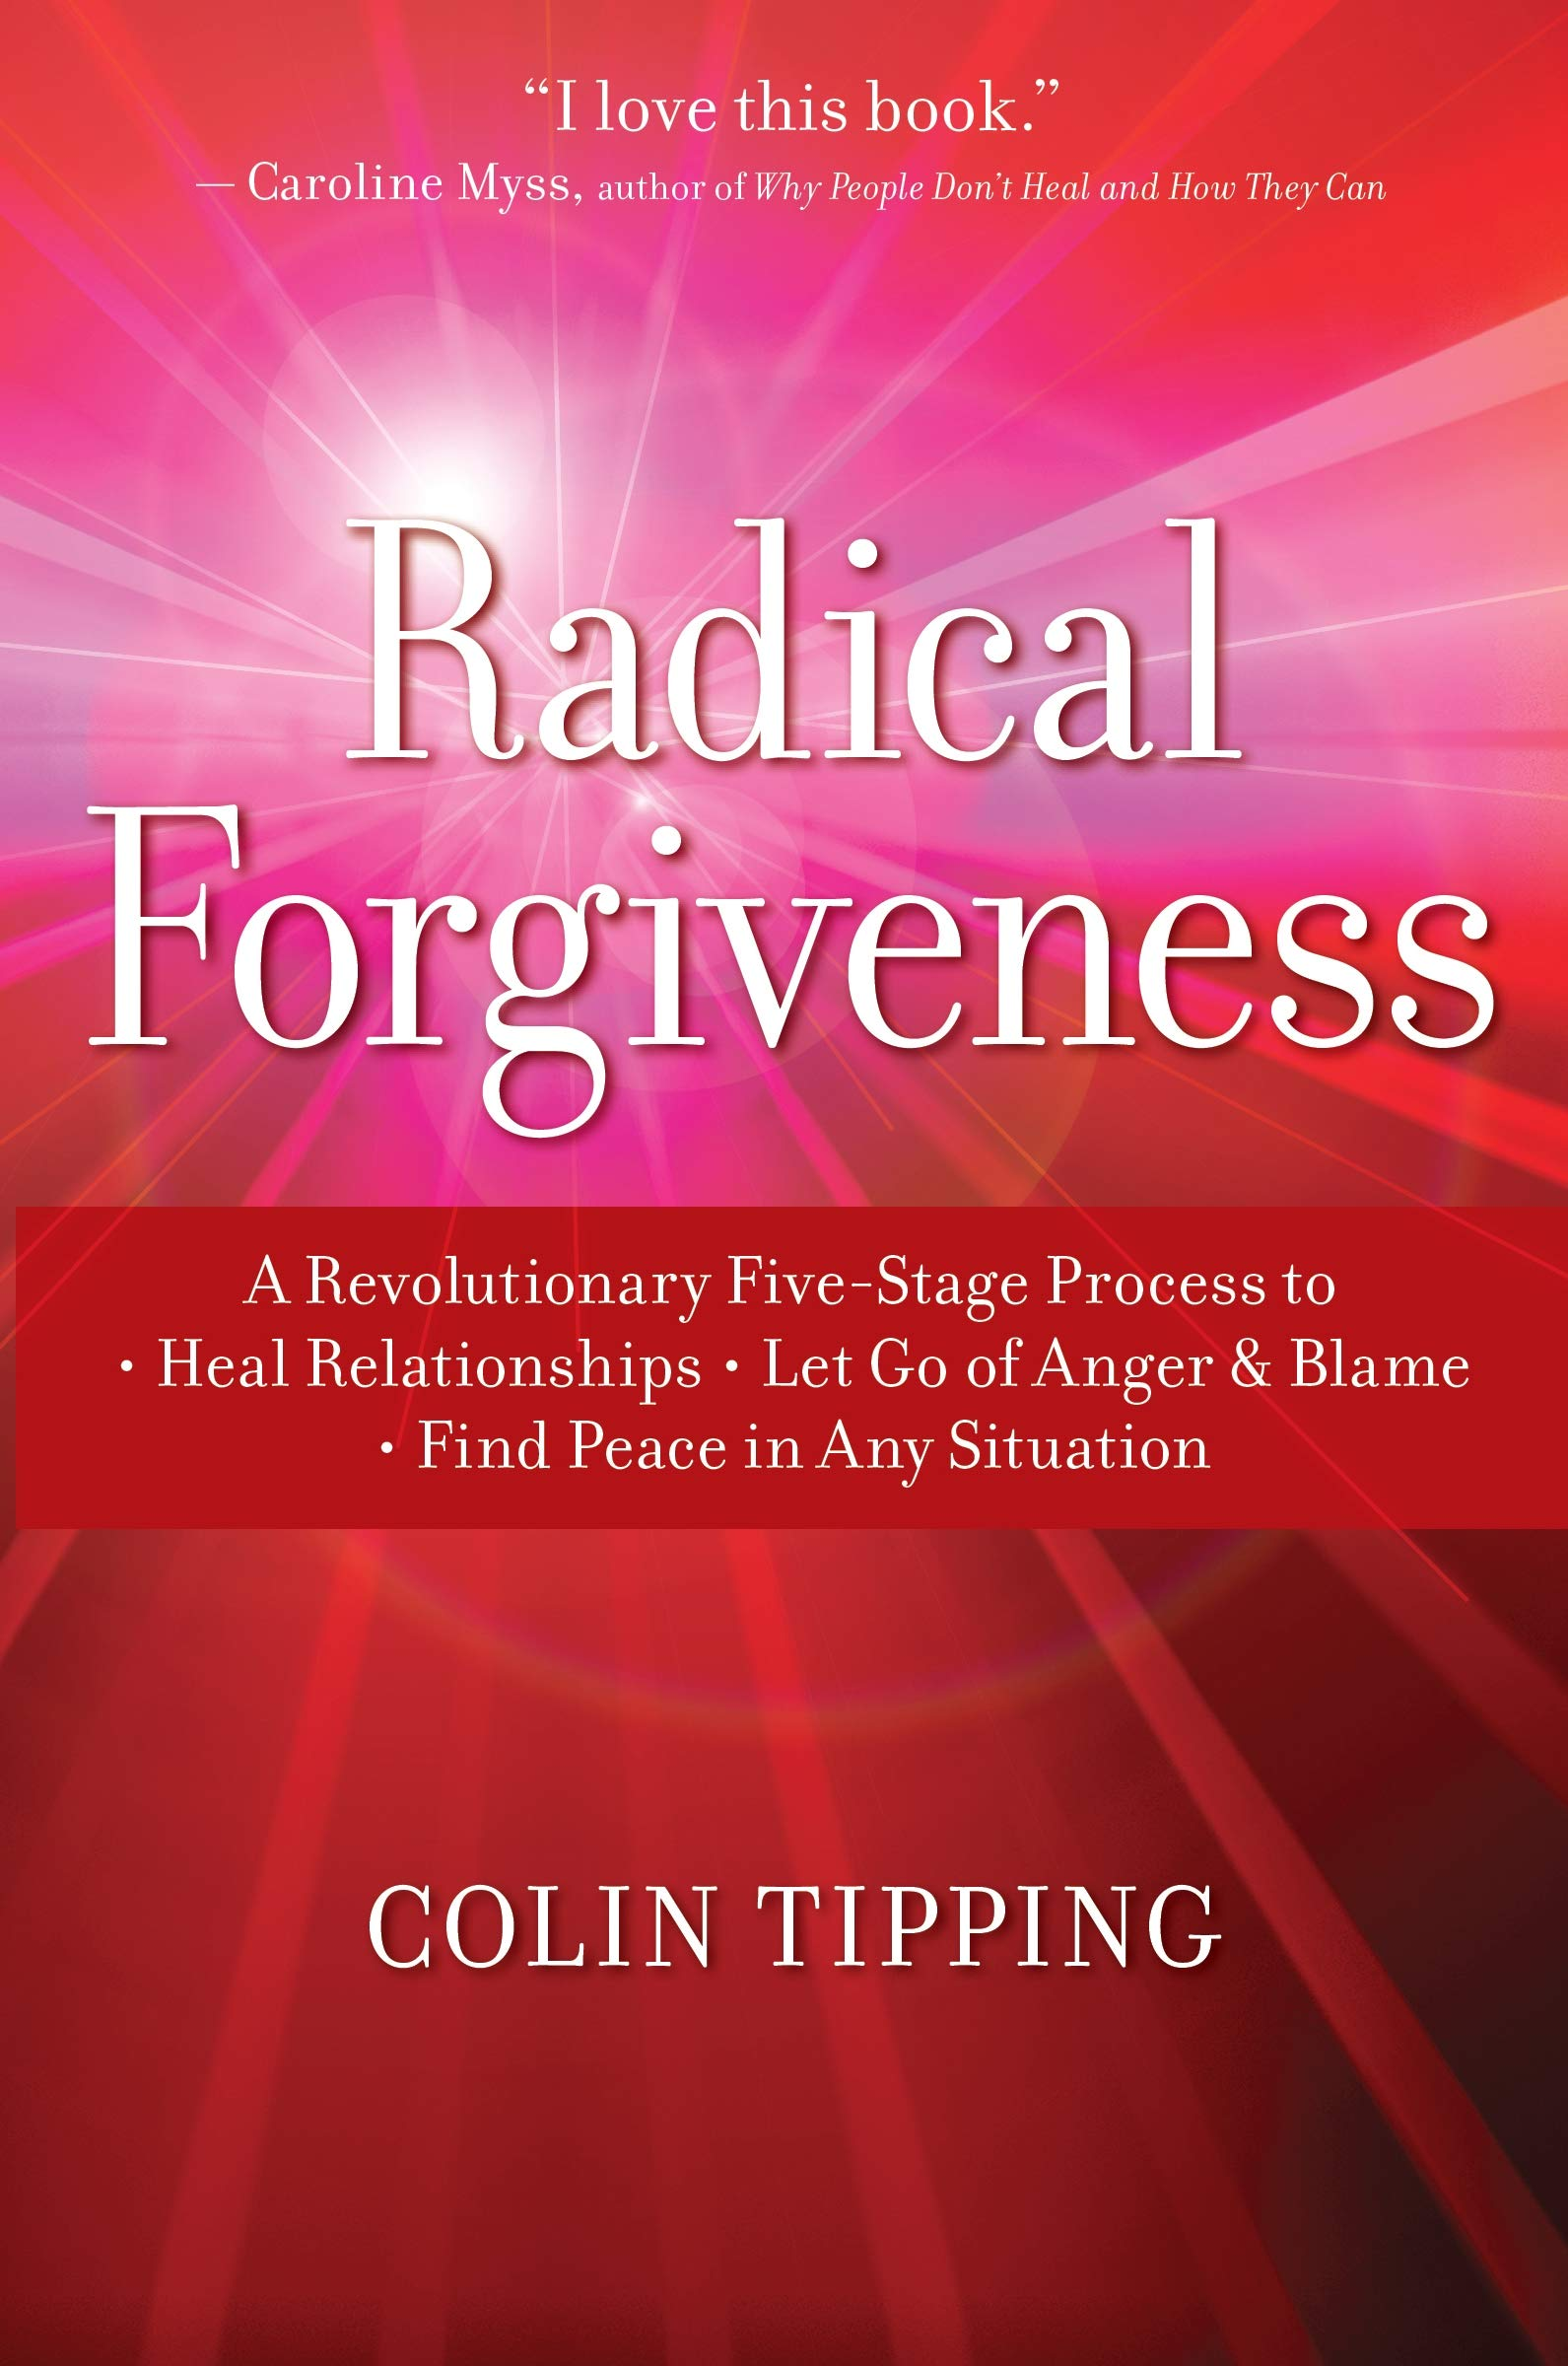 Radical Forgiveness: A Revolutionary Five-Stage Process to Heal Relationships, Let Go of Anger and Blame, and Find Peace…